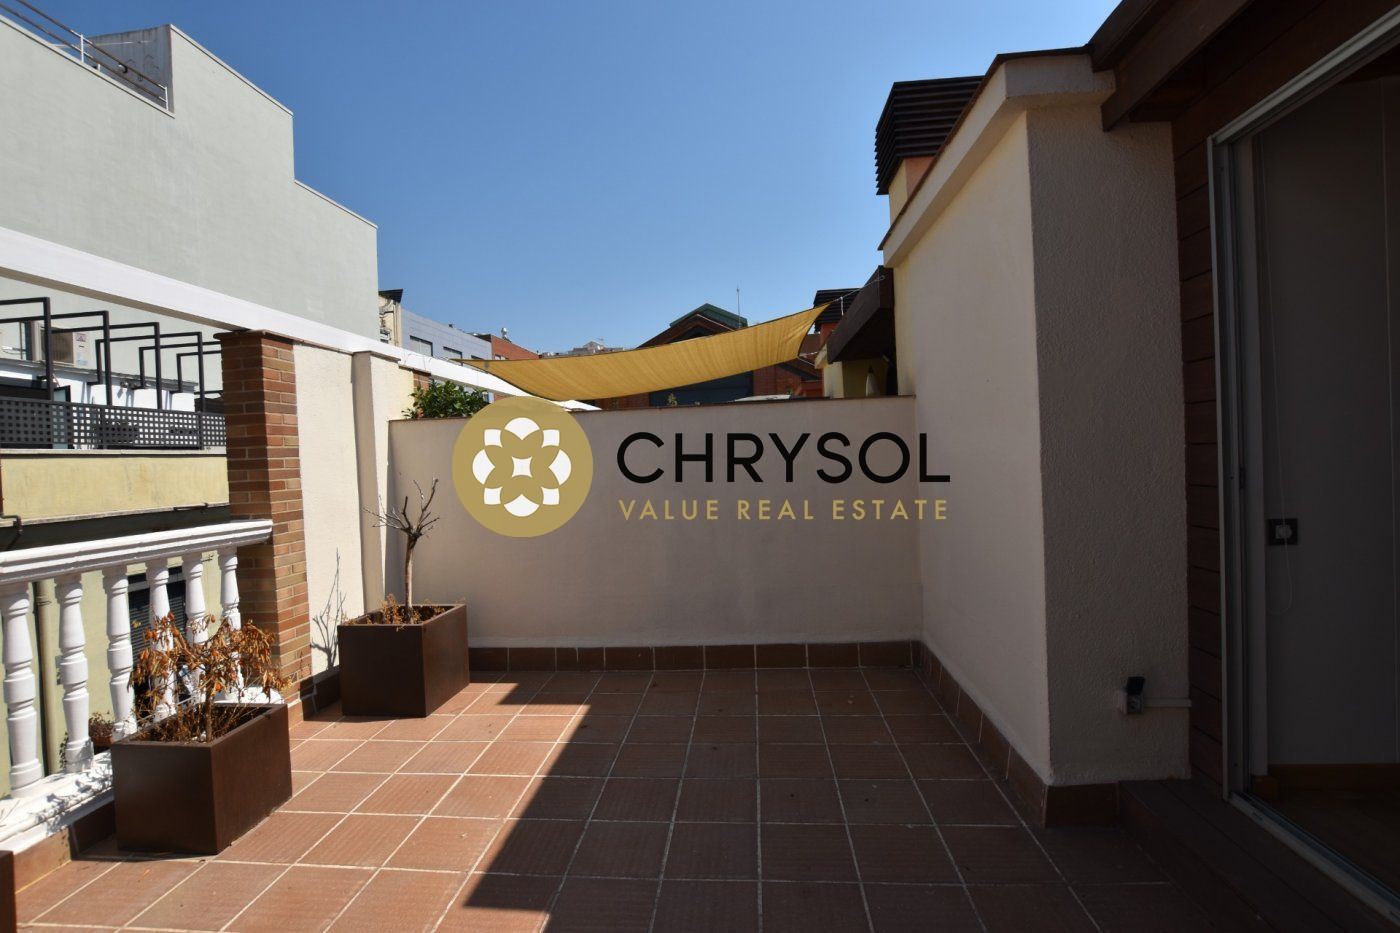 Photogallery - 37 - Chrysol Value